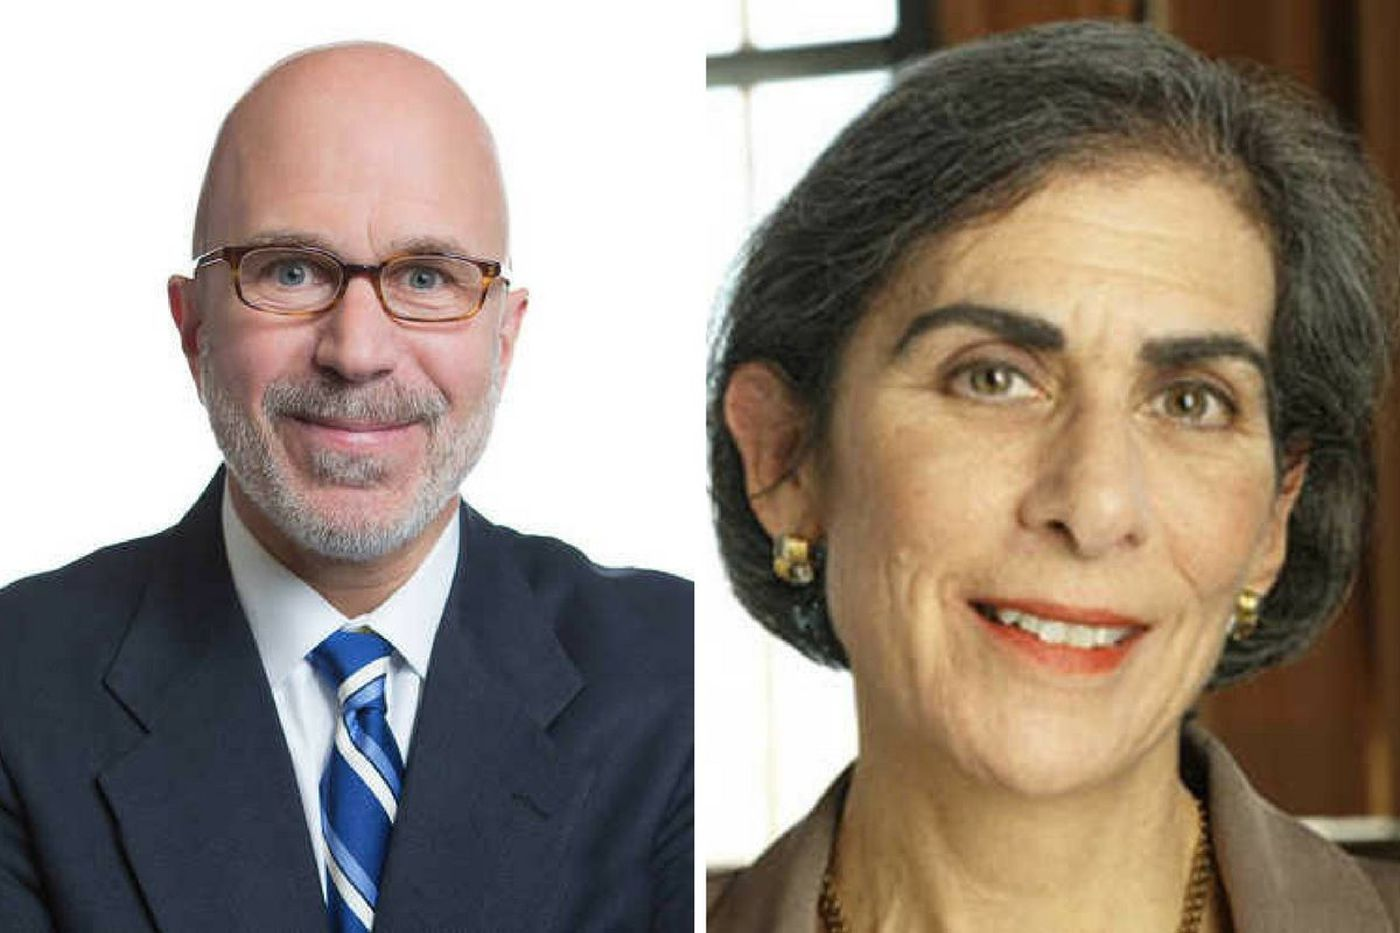 Amy Wax, controversial Penn Law professor, loses her voice | Michael Smerconish